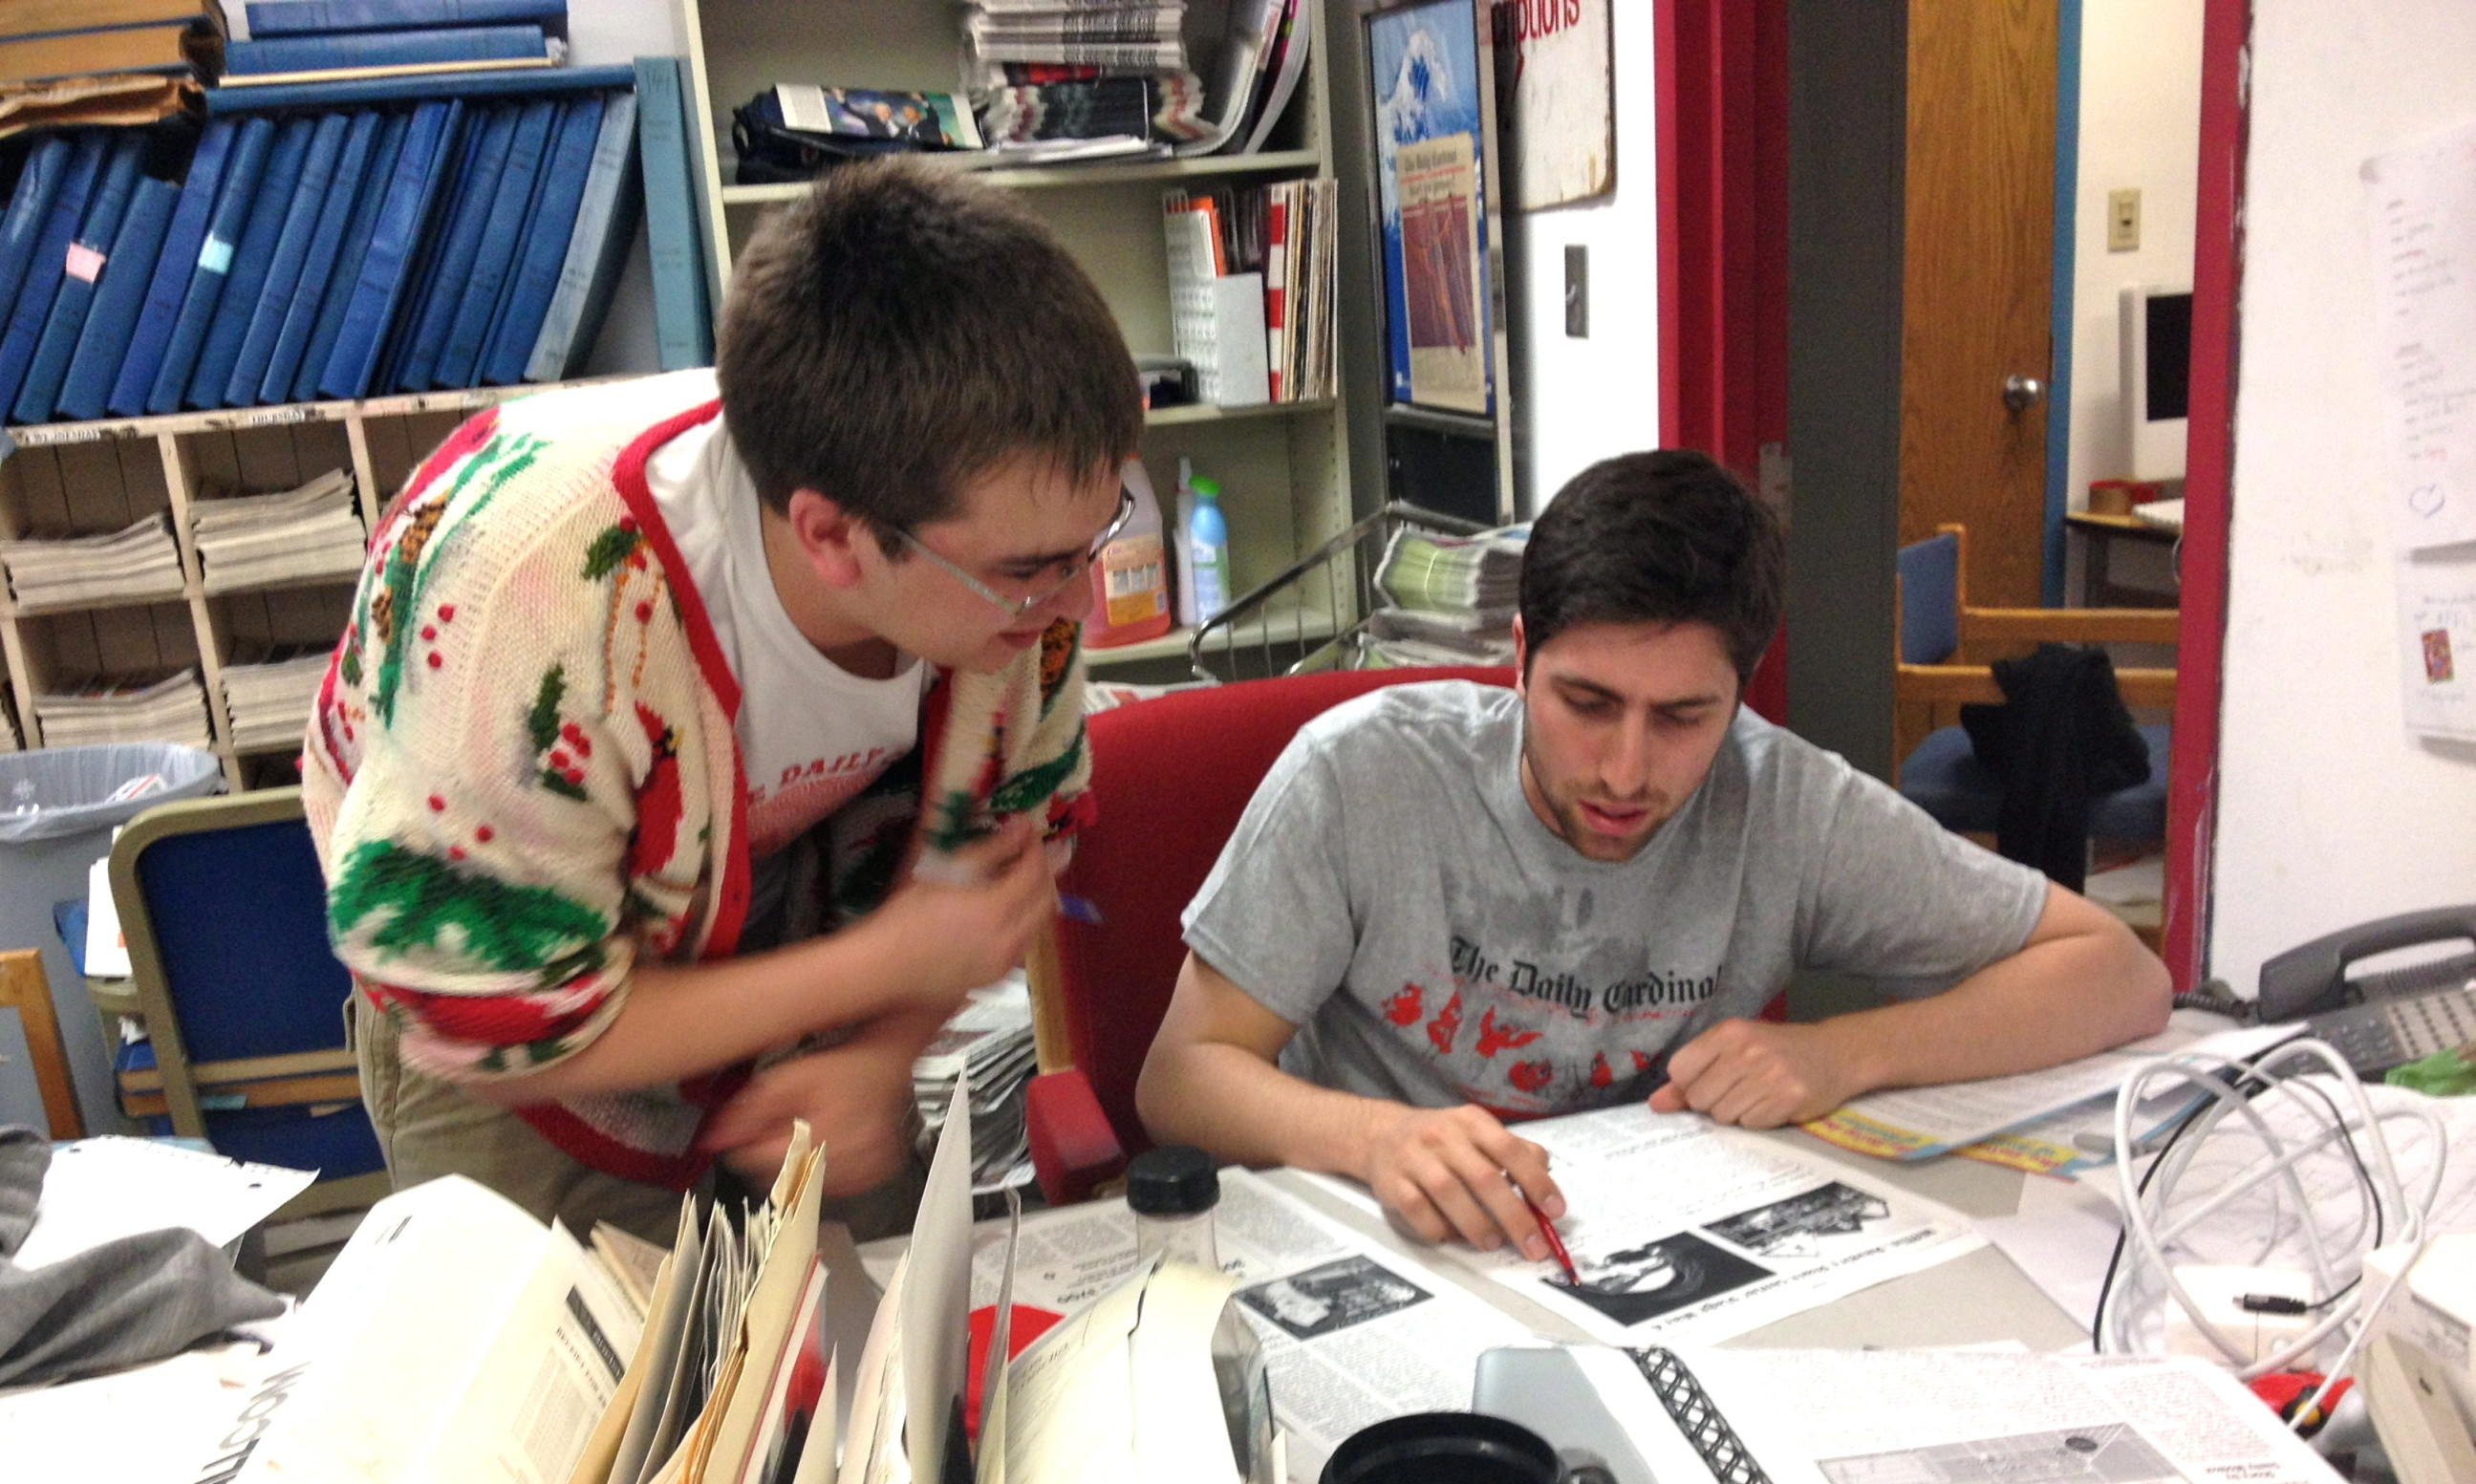 Former editor-in-chief Scott Girard and former managing editor Alex DiTullio look over the final pages of the Daily Cardinal, one of the University of Wisconsin-Madison's independent student newspapers.